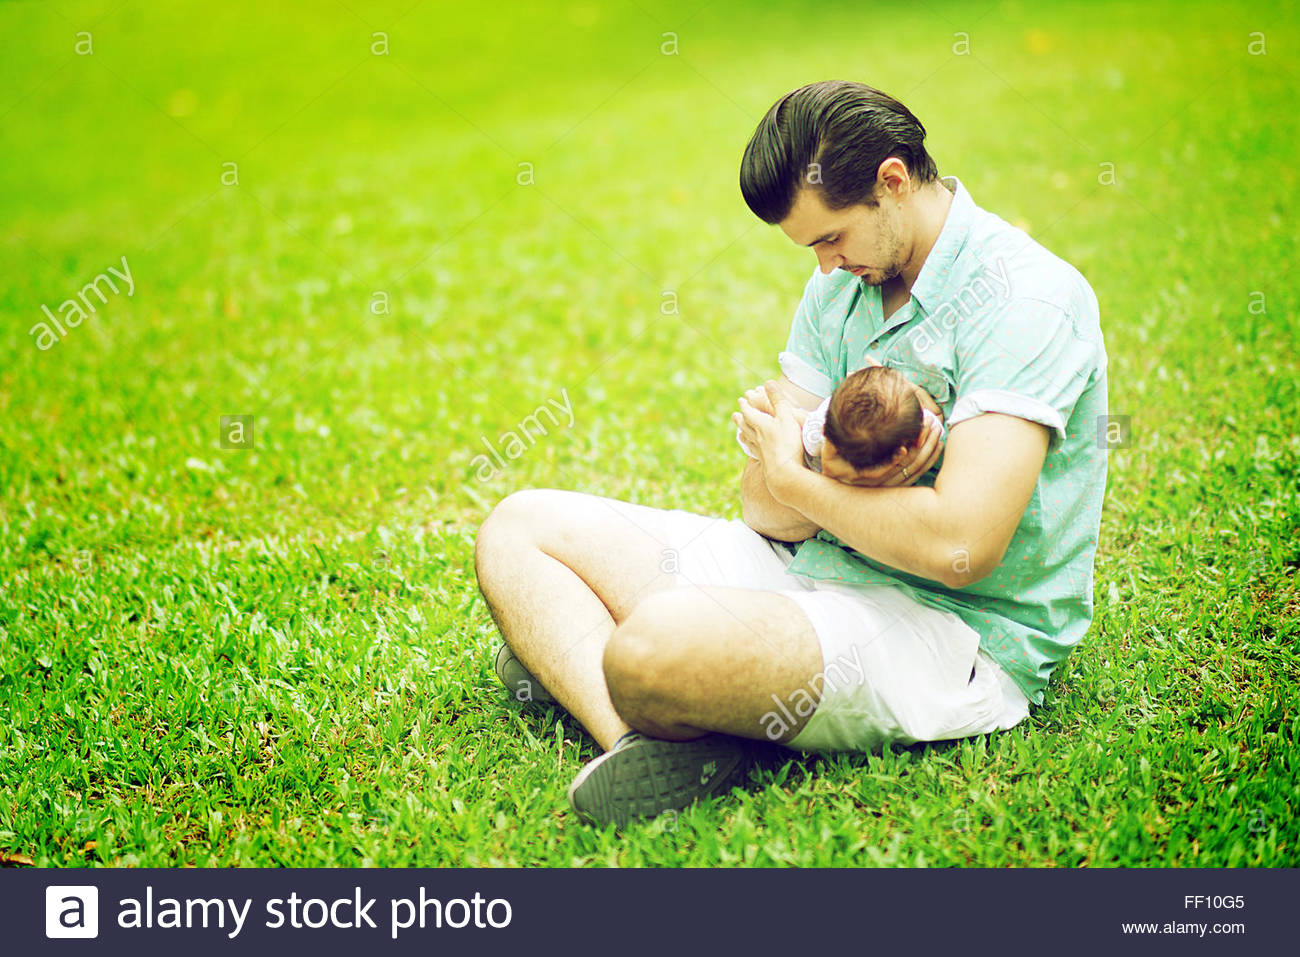 Father Holding New Born Baby at Park - Stock Image